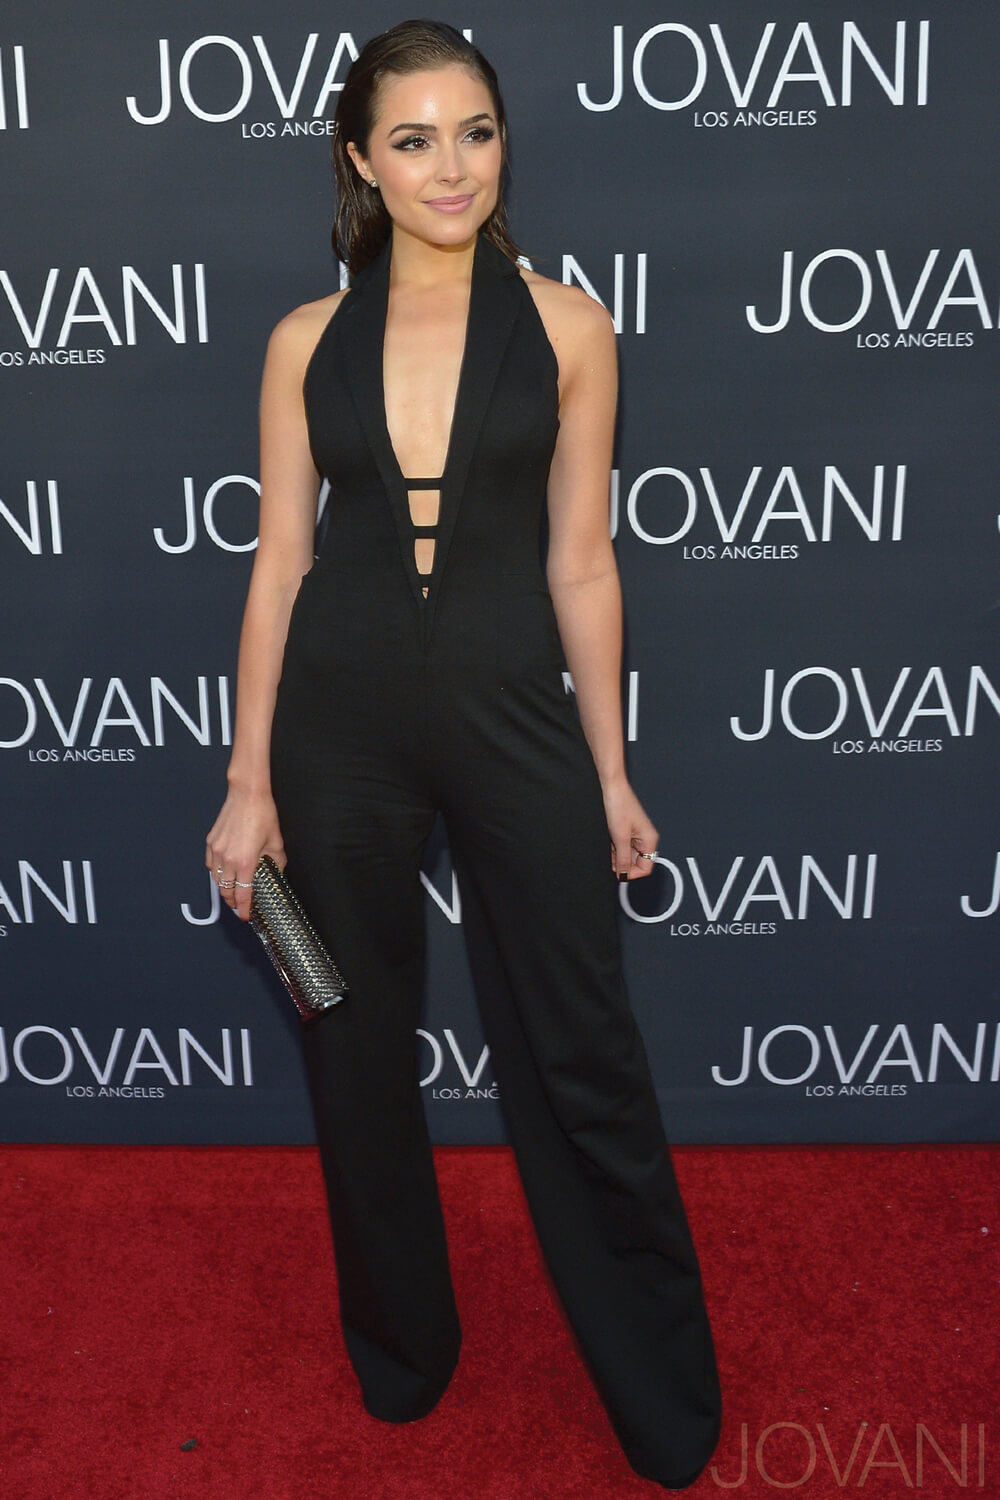 Olivia Culpo at the Jovani LA store opening in 40470 on mobile 0